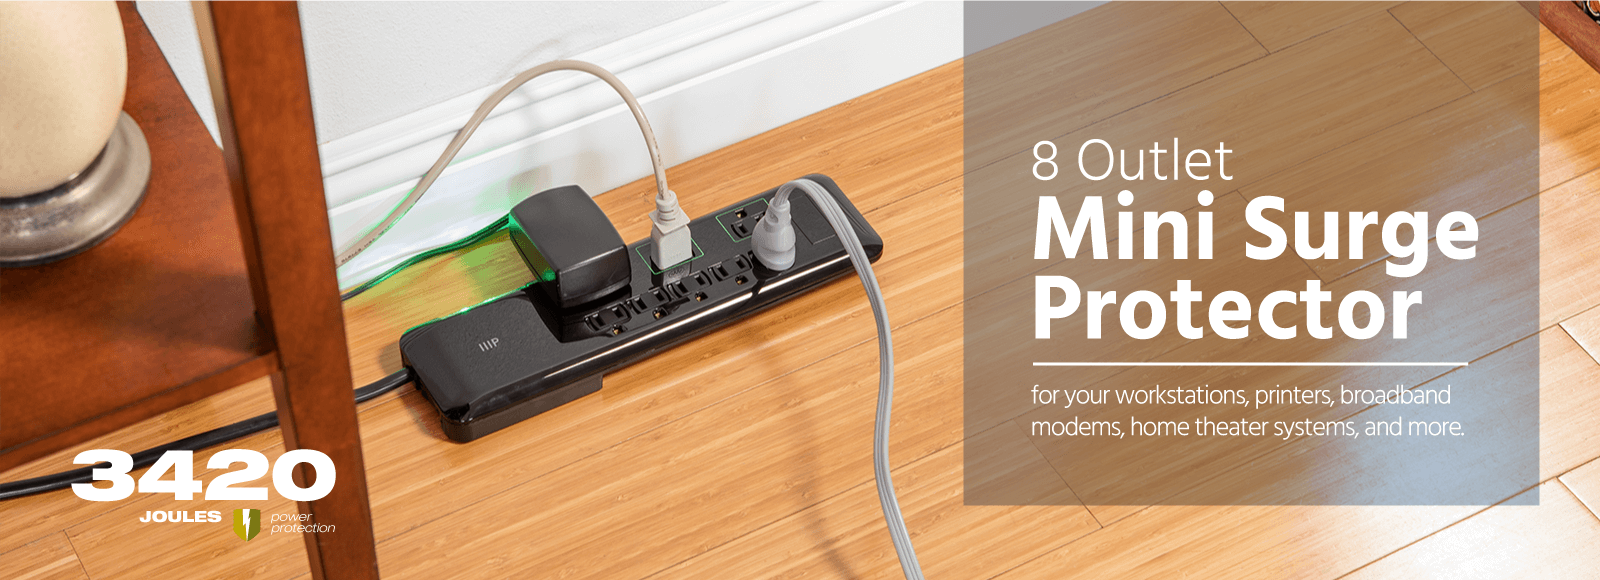 8 Outlet Slim Surge Protector